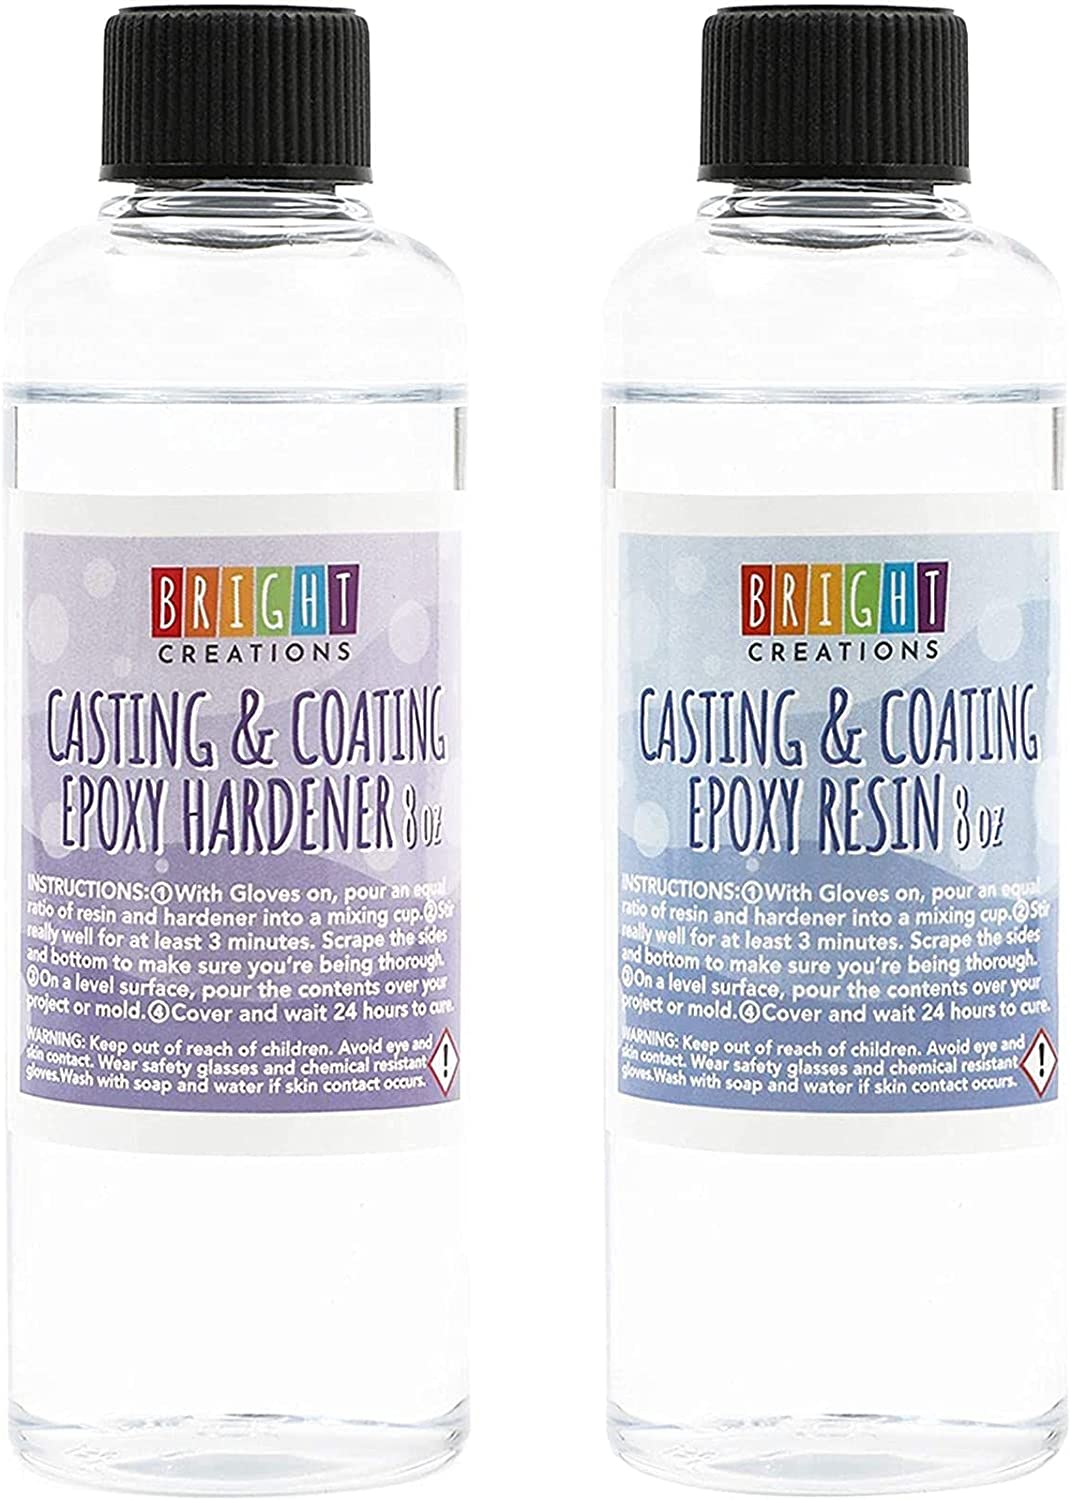 Clear Casting Epoxy Resin for Jewelry Crafts 40% OFF Cheap Fort Worth Mall Sale 8 Making DIY oz